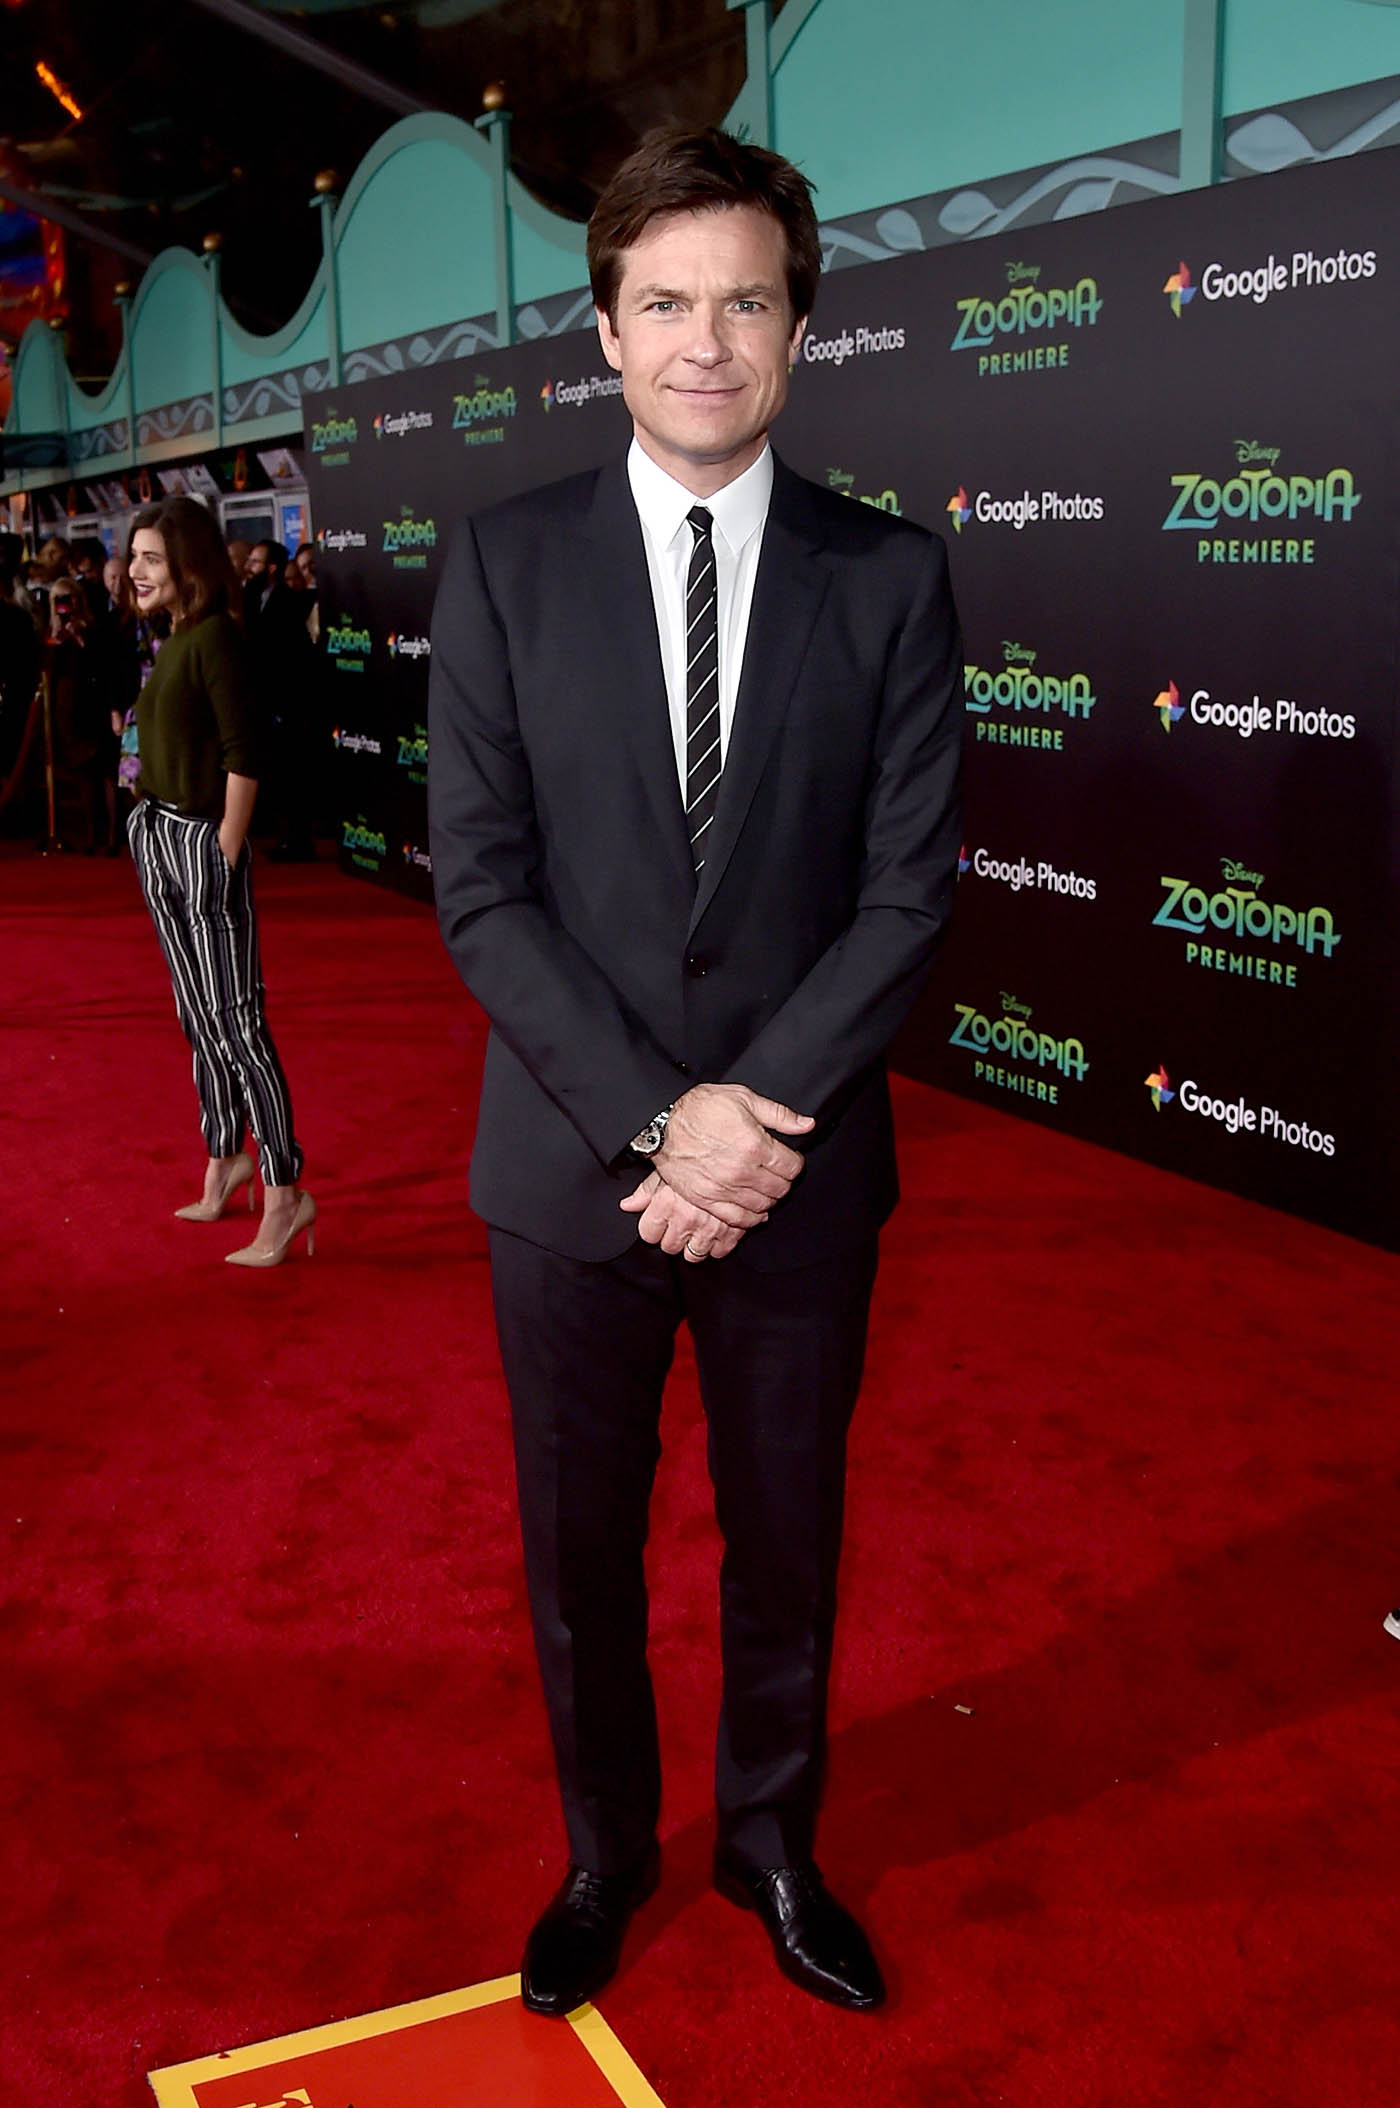 """HOLLYWOOD, CA - FEBRUARY 17: Actor Jason Bateman attends the Los Angeles premiere of Walt Disney Animation Studios' """"Zootopia"""" on February 17, 2016 in Hollywood, California. (Photo by Alberto E. Rodriguez/Getty Images for Disney) *** Local Caption *** Jason Bateman"""